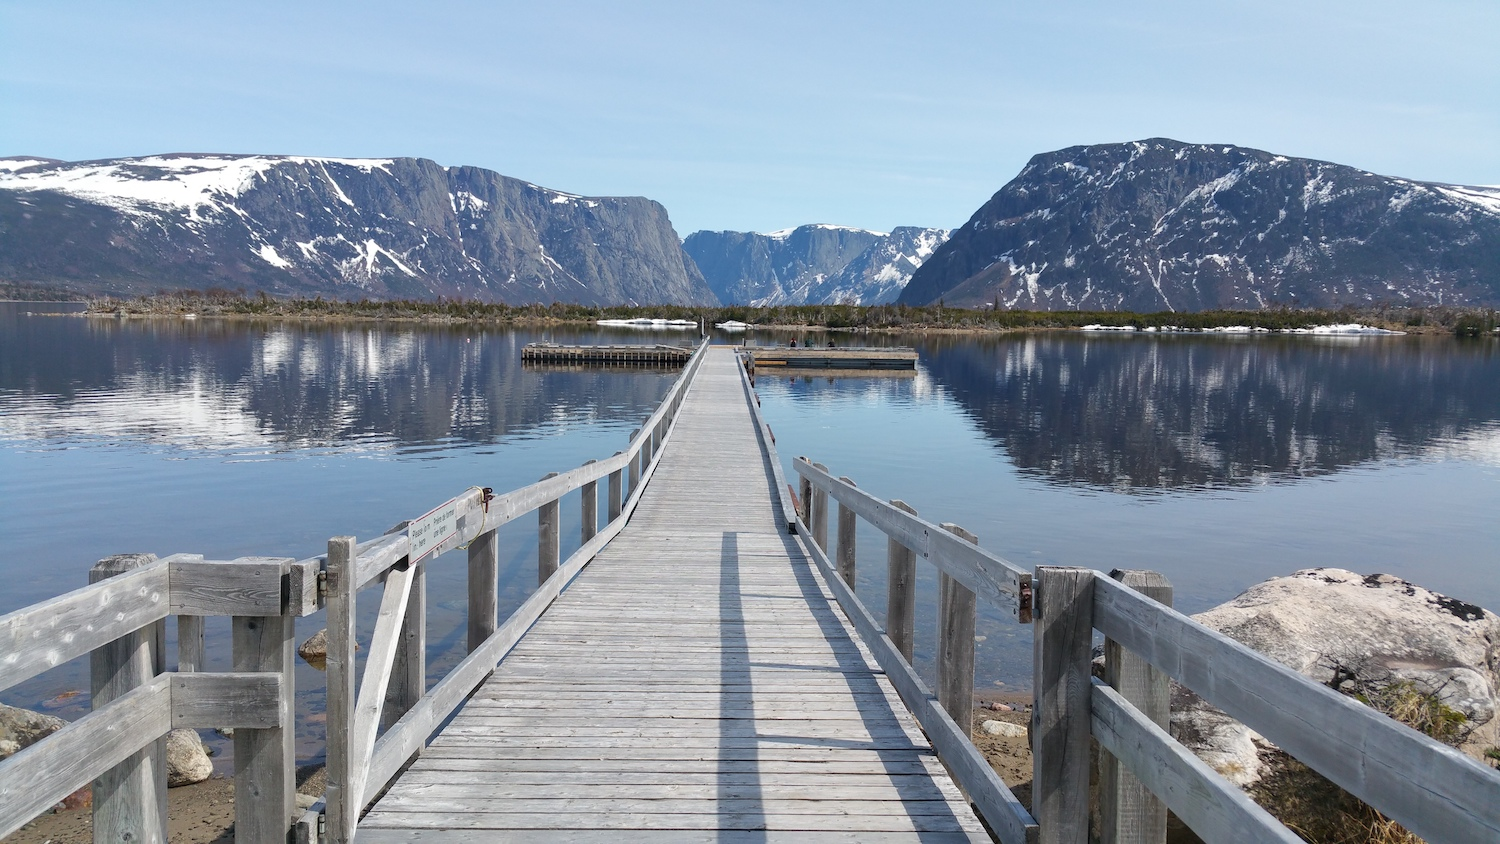 """""""Boardwalk into Western Brook Pond with mountains in Gros Morne National Park, Newfoundland"""" By Julie A Lynch via Shutterstock"""